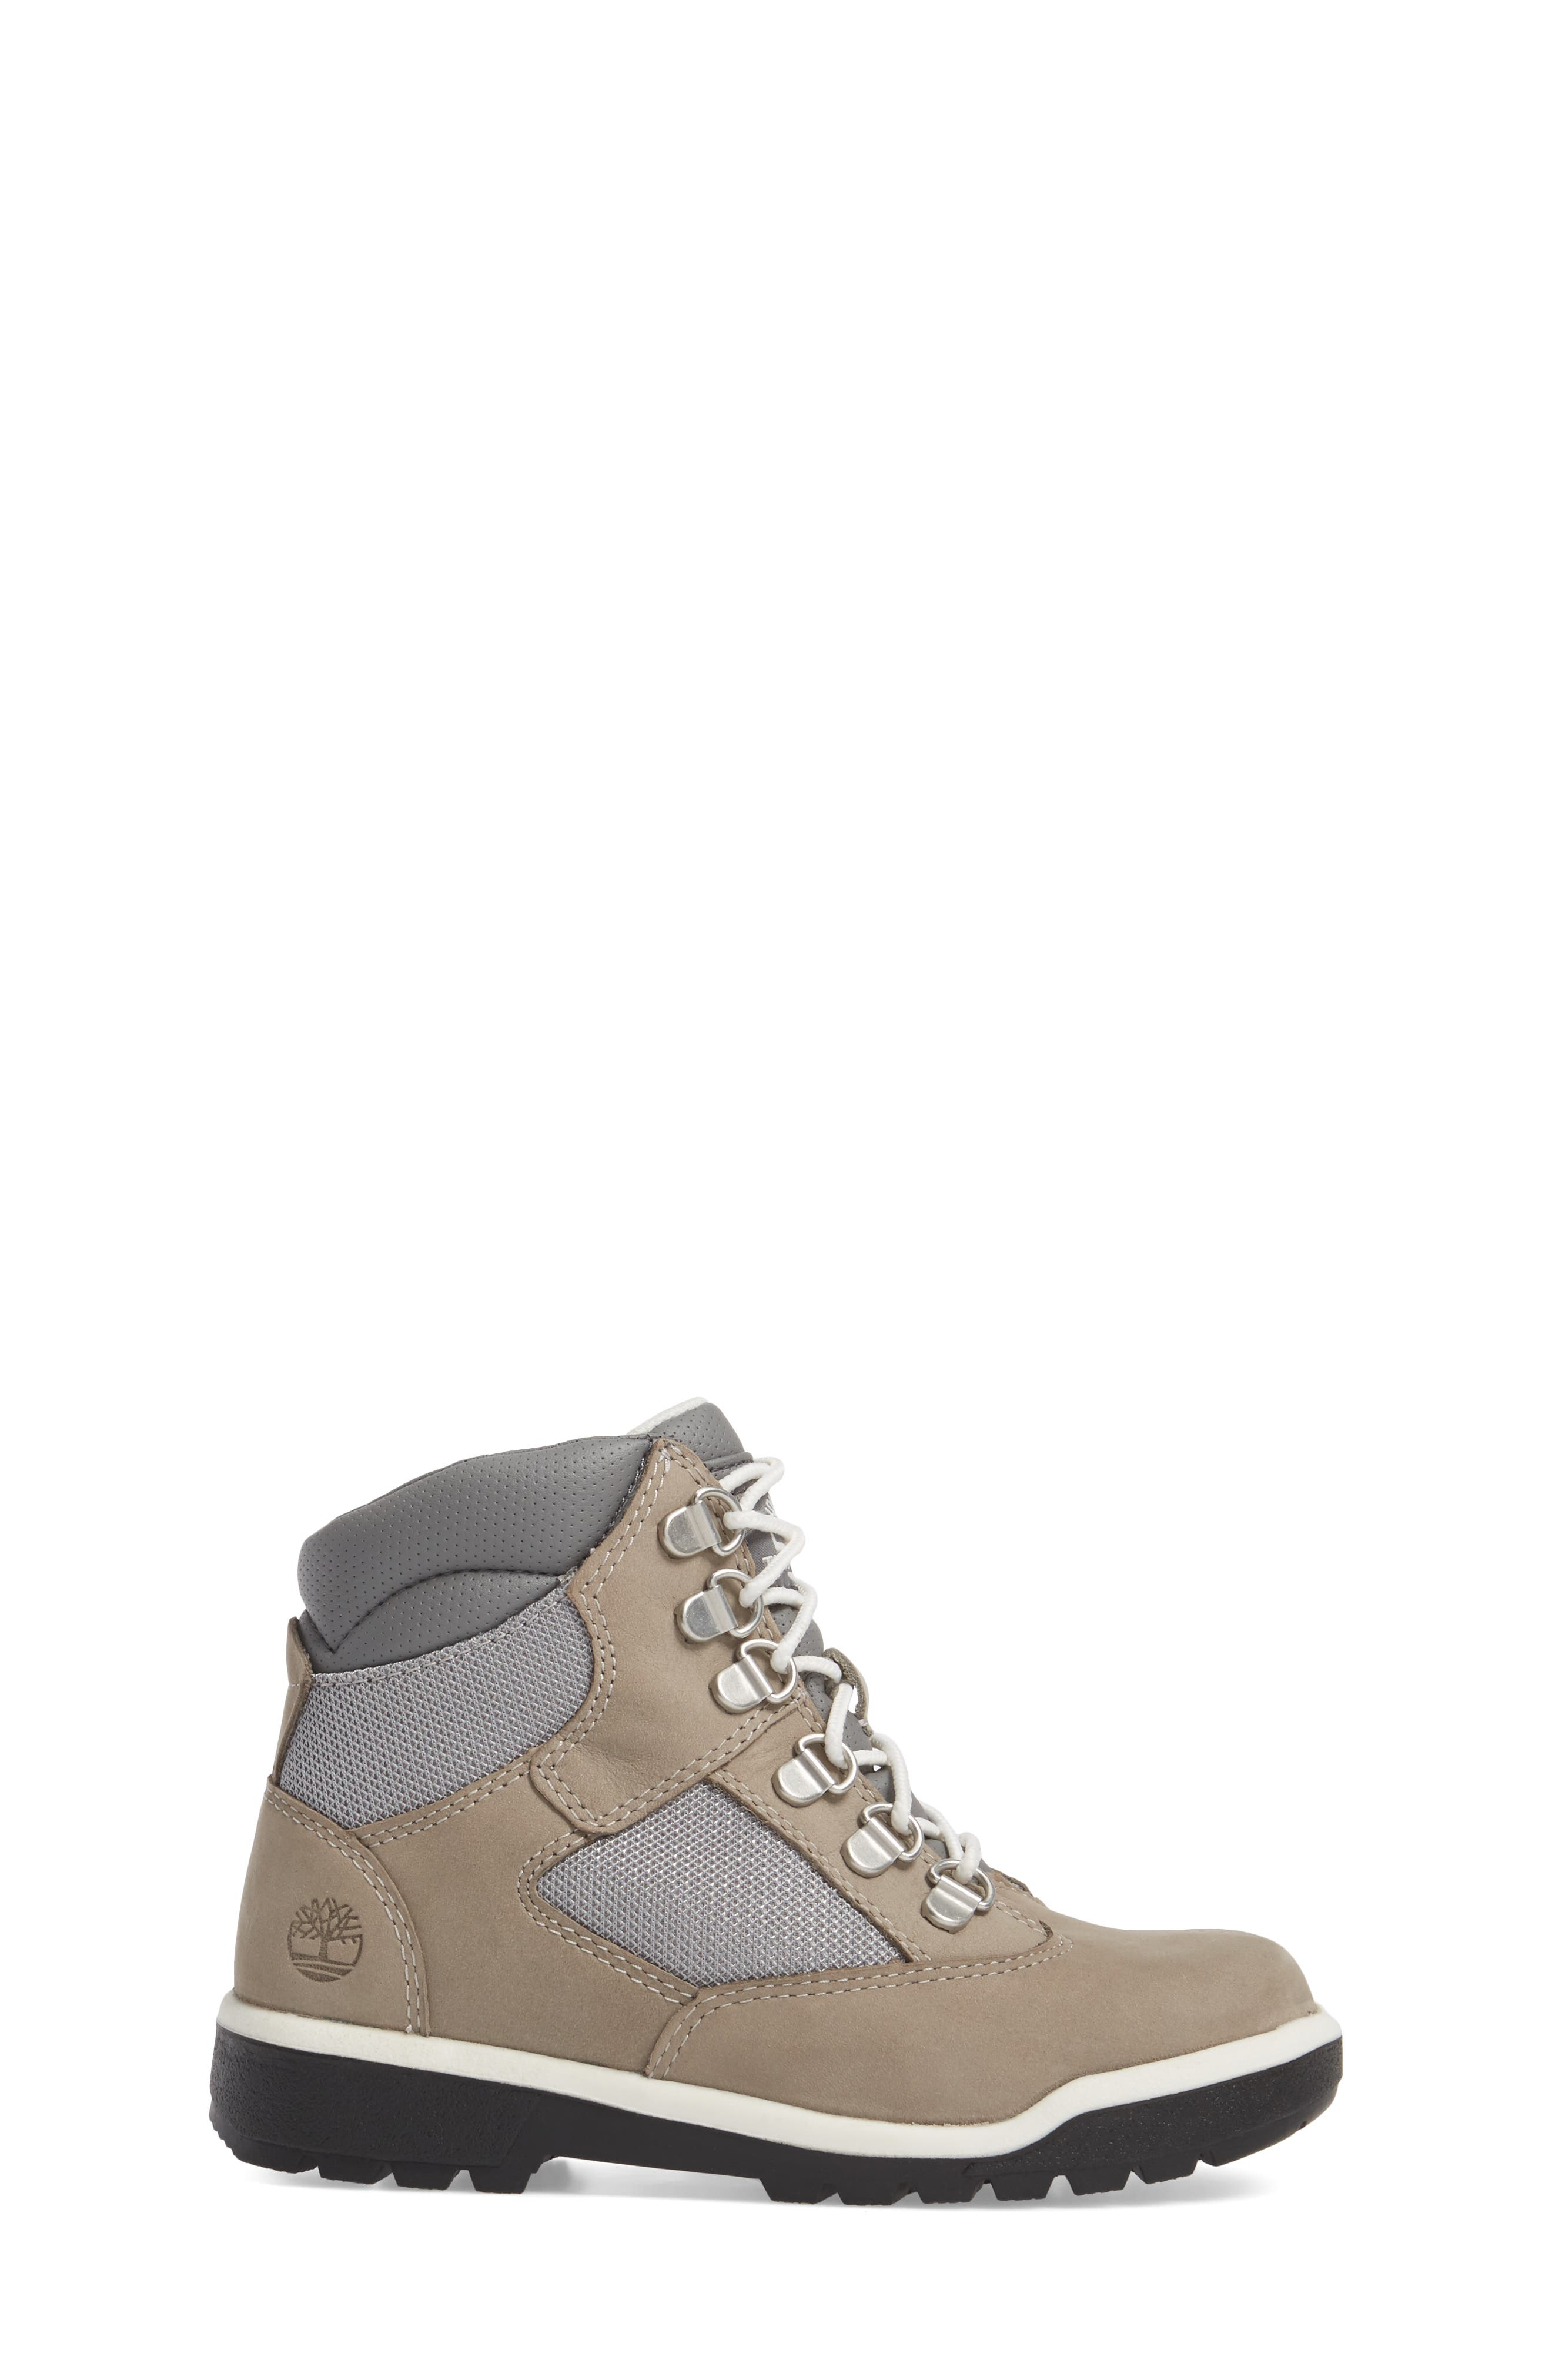 Alternate Image 3  - Timberland Water-Resistant 6-Inch Field Boot (Toddler, Little Kid & Big Kid)